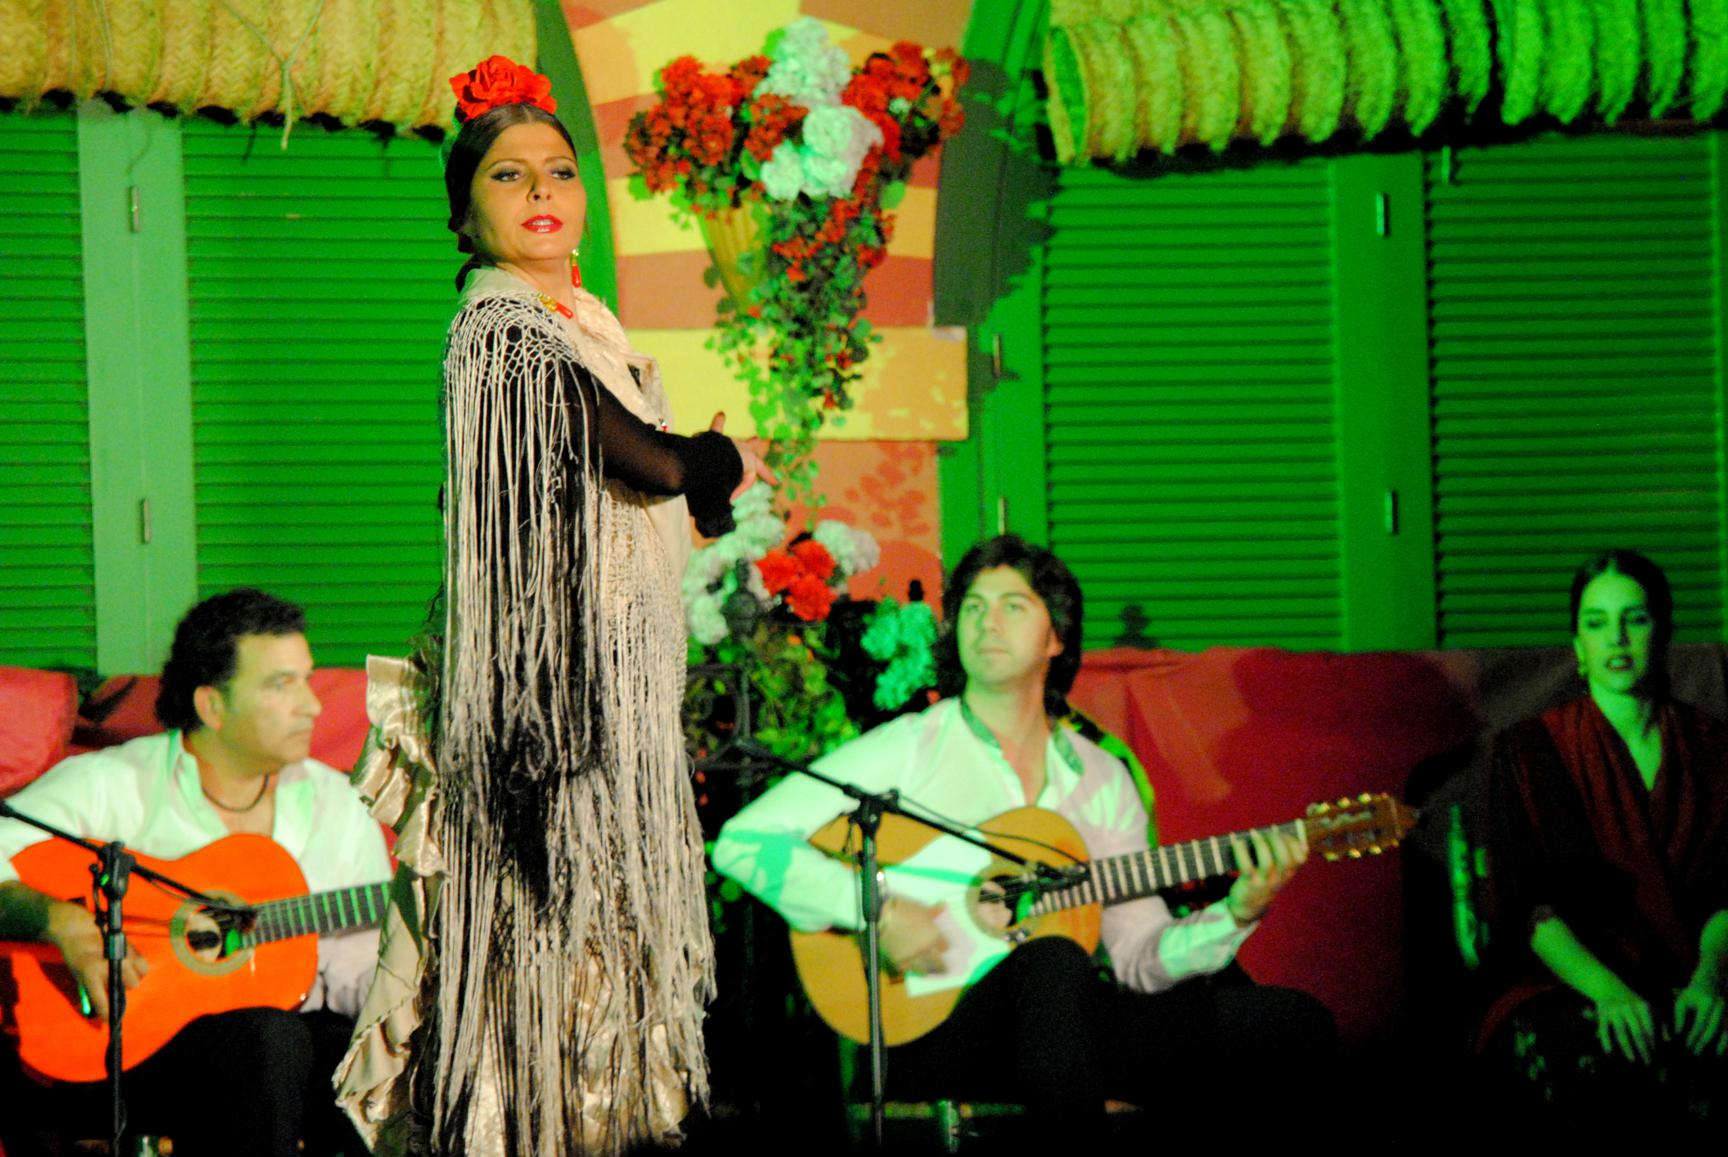 sevilla-tablao-flamenco